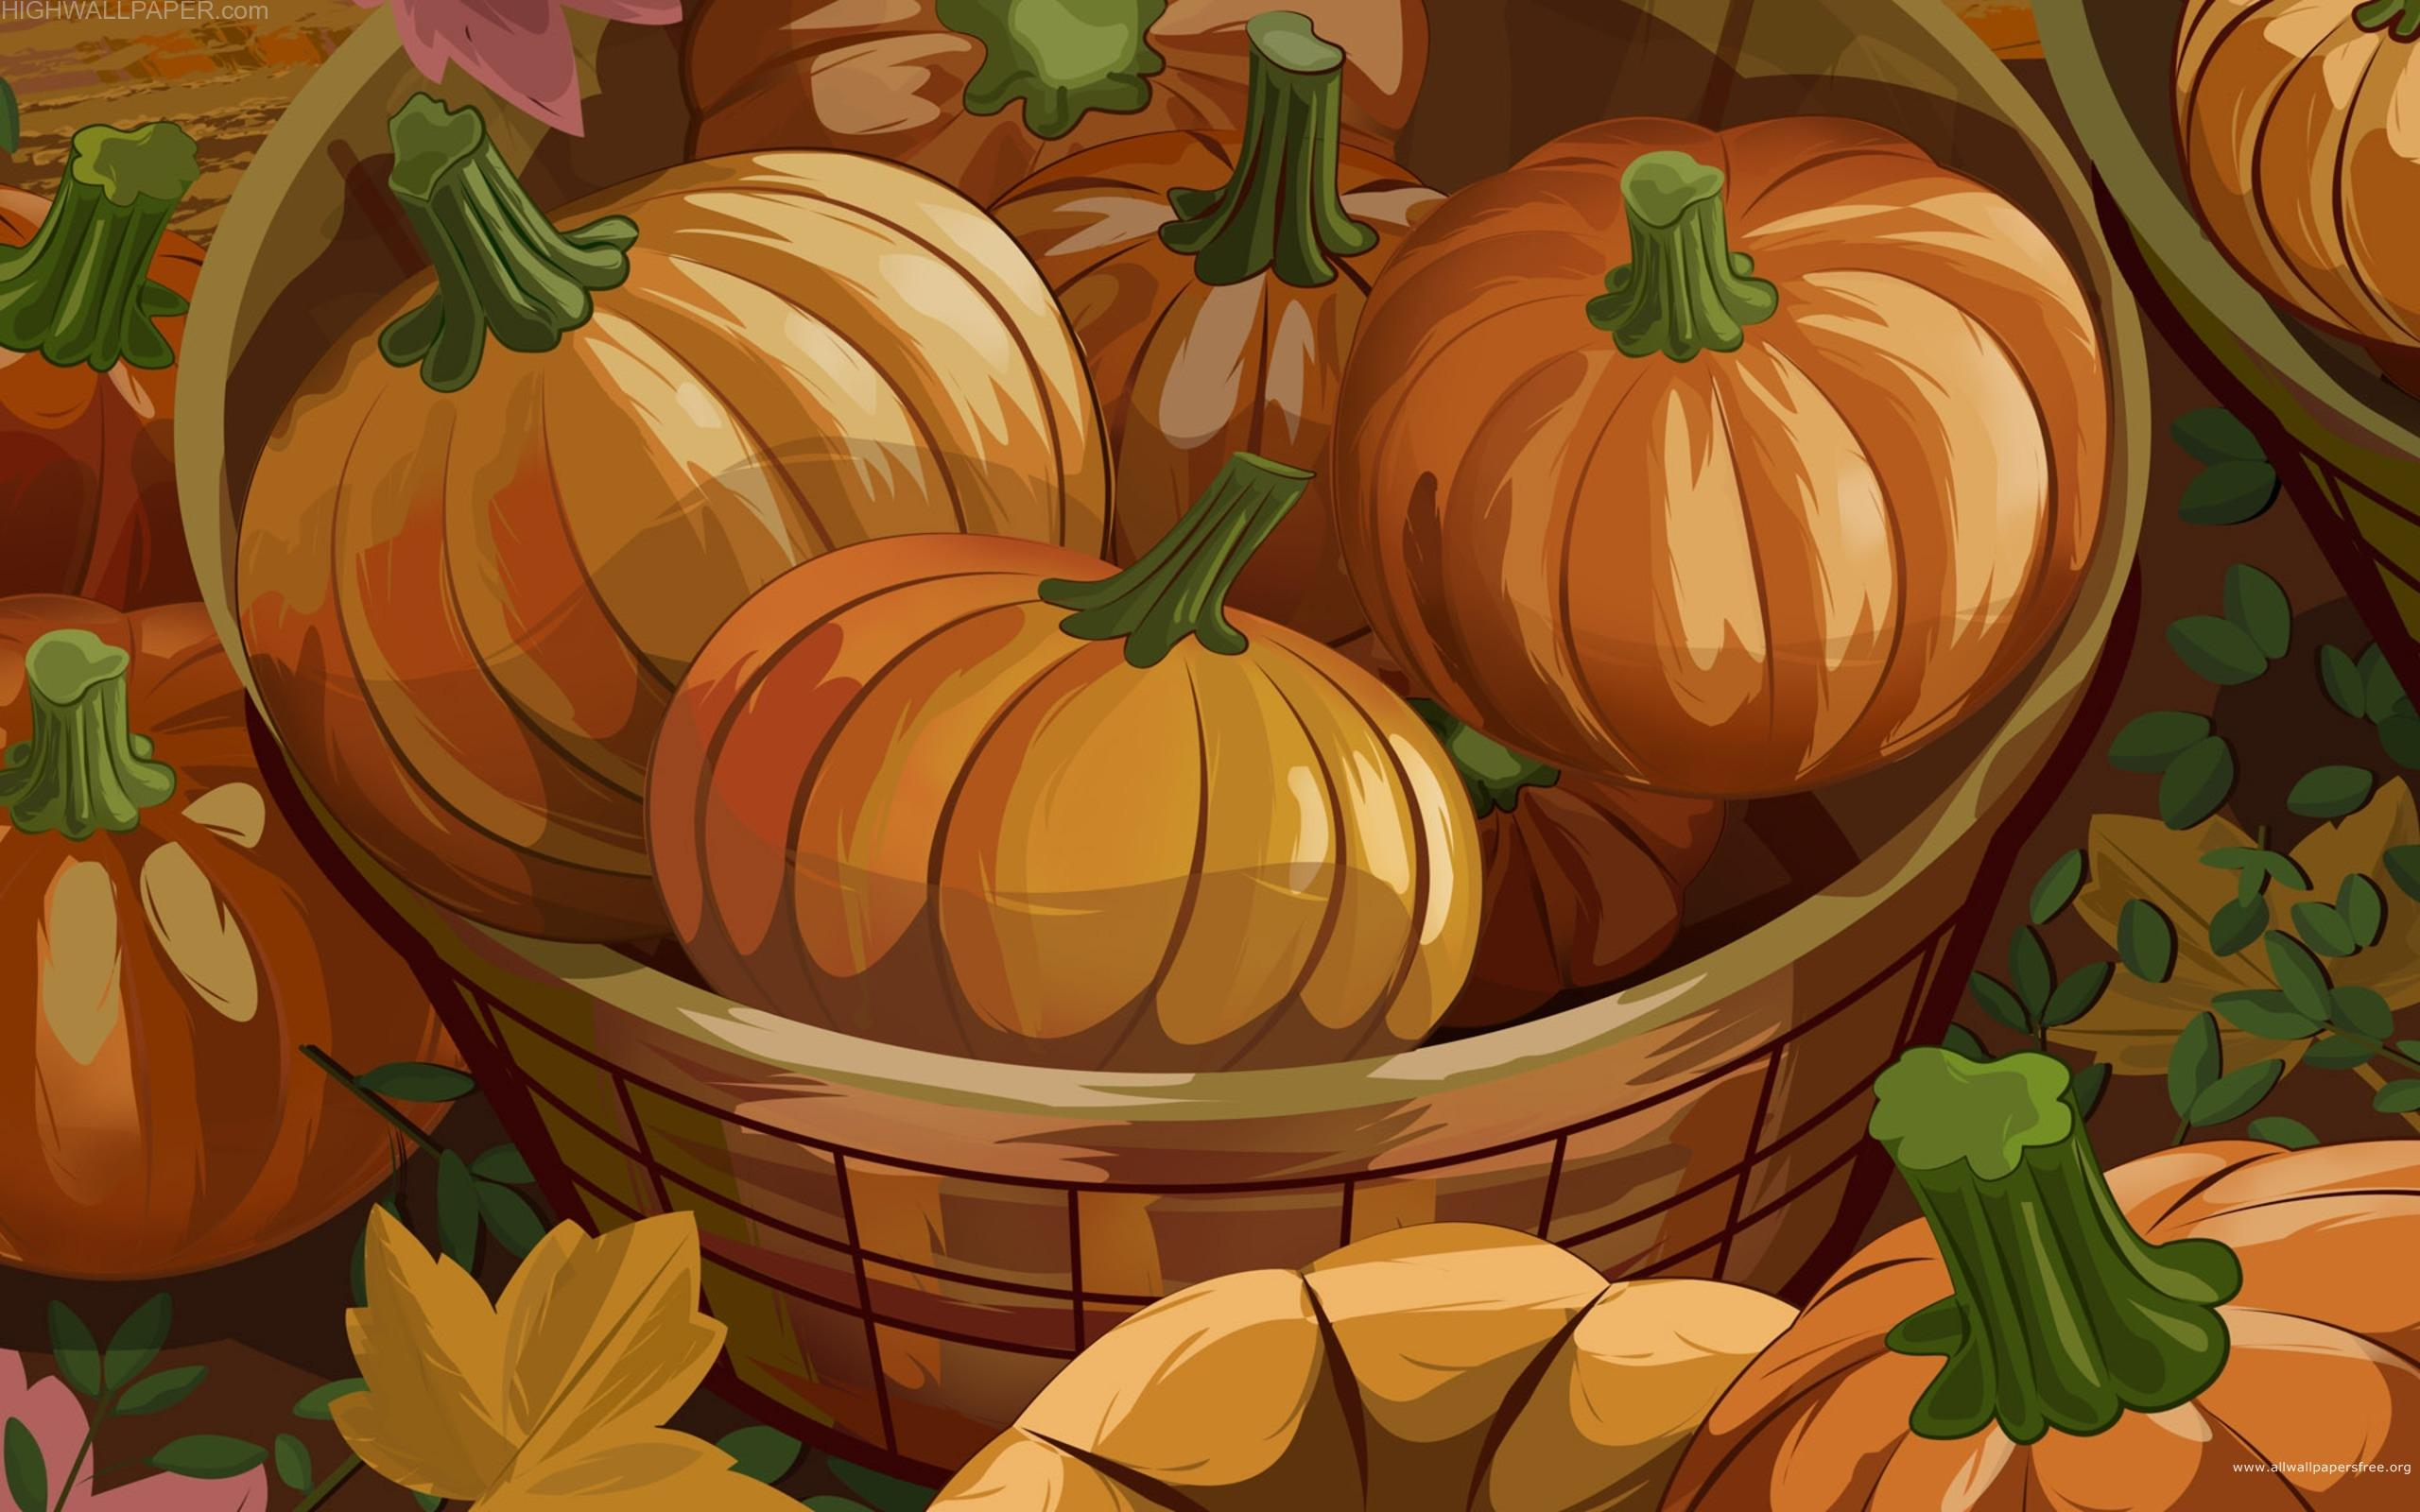 Pumpkin Full of Basket